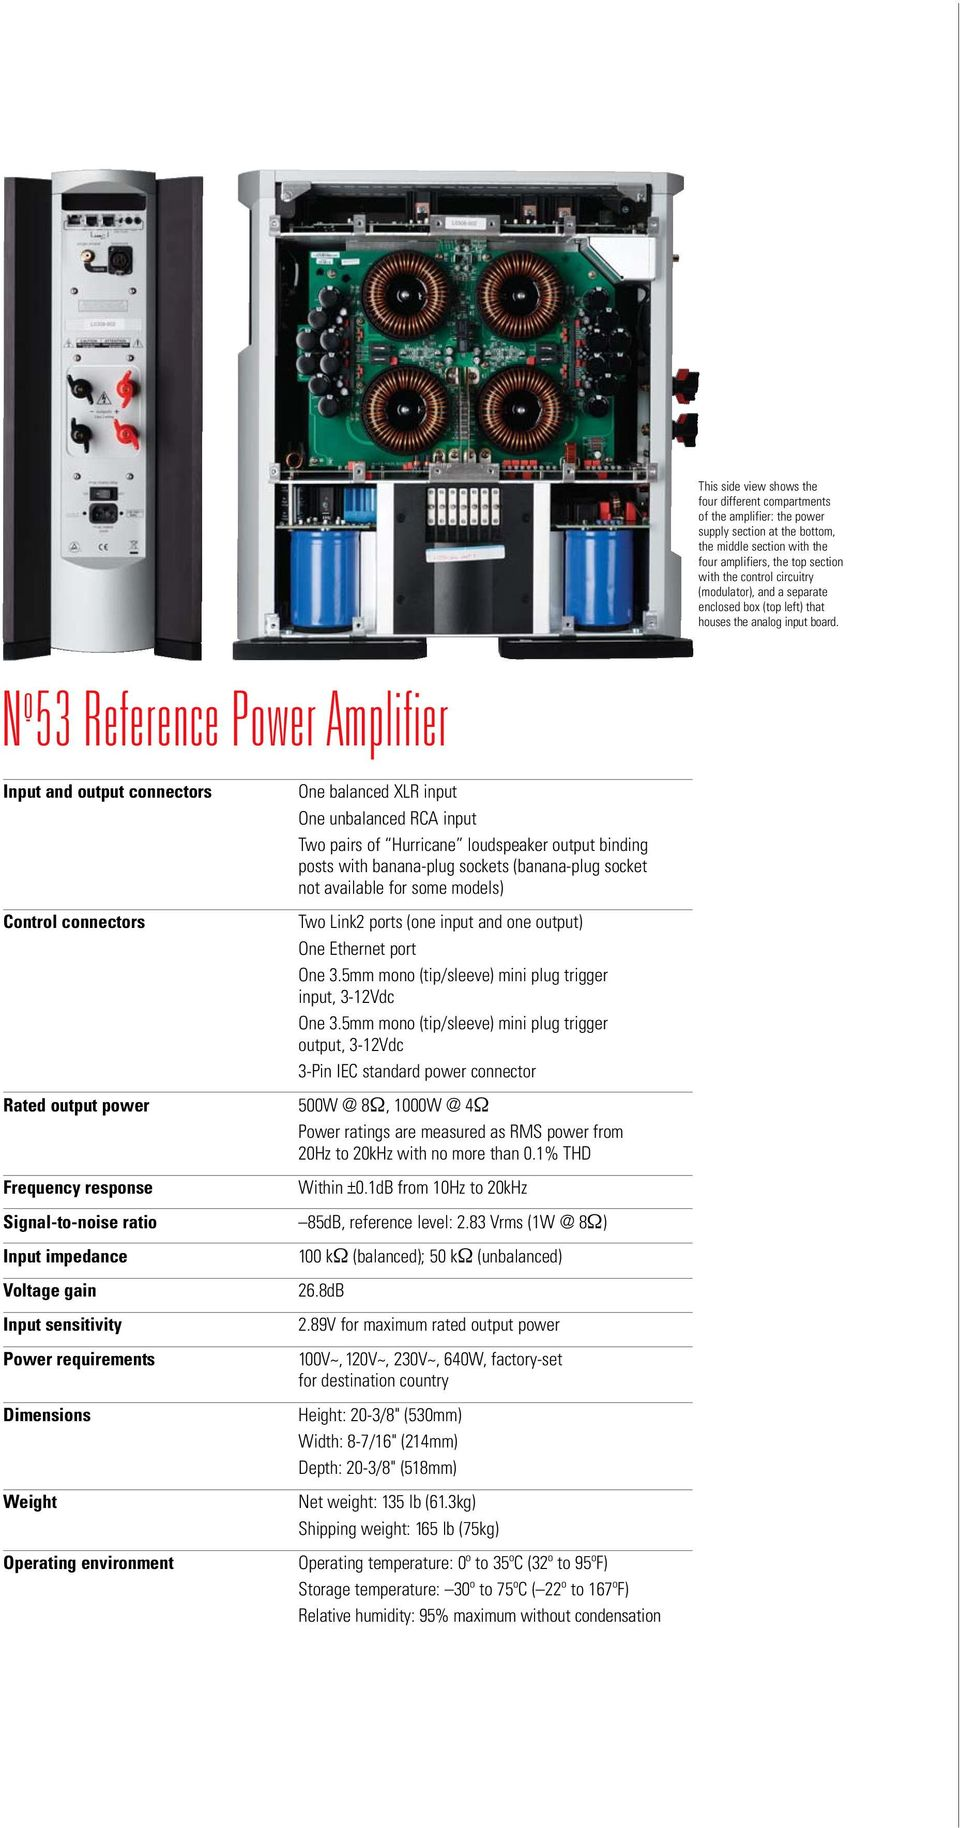 N o 53 REFERENCE POWER AMPLIFIER - PDF